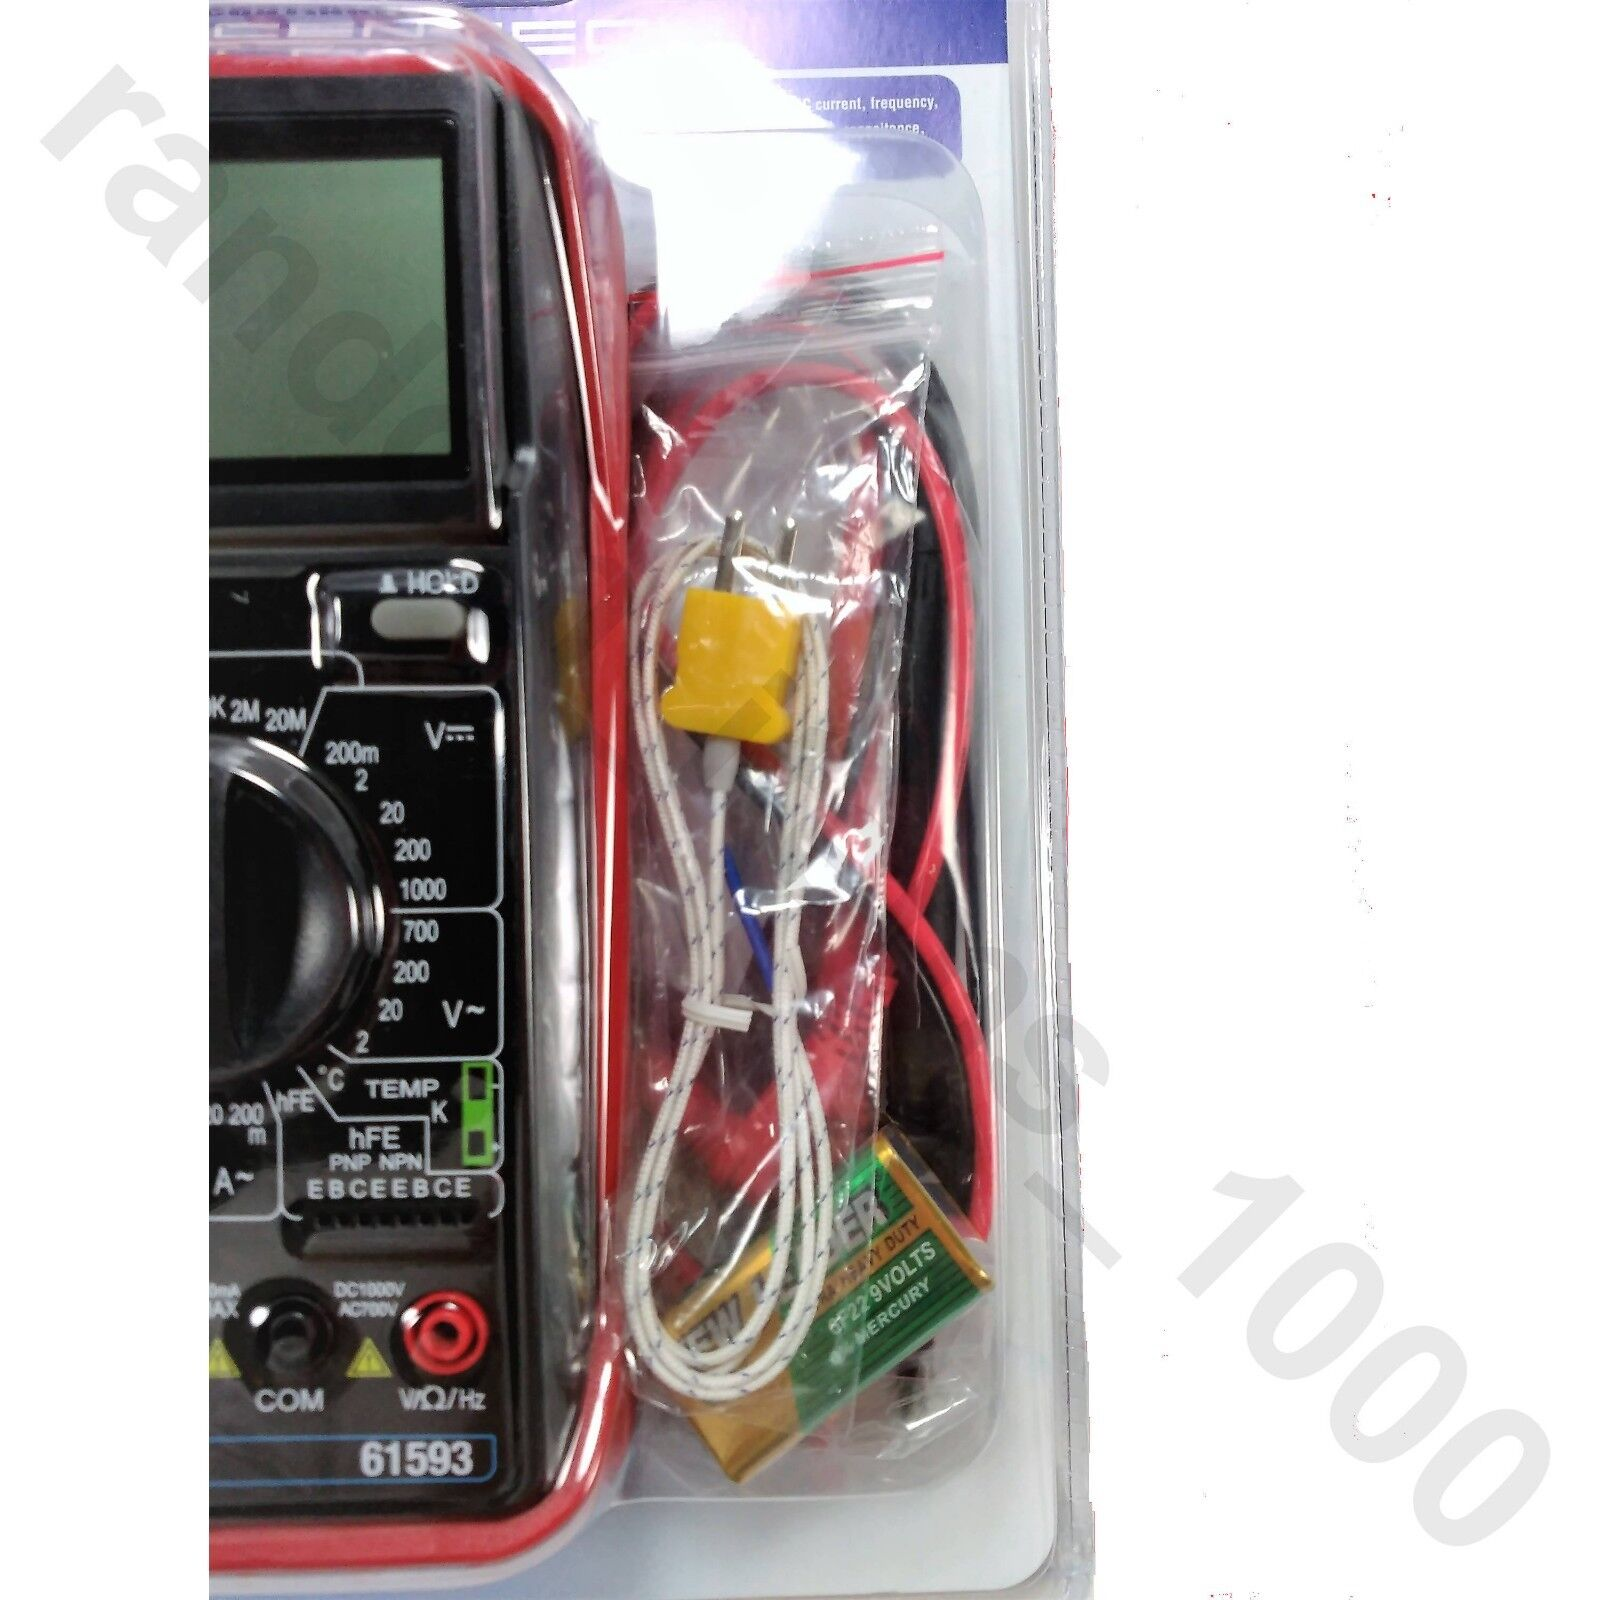 11 Function Digital Multimeter With Audible Continuity